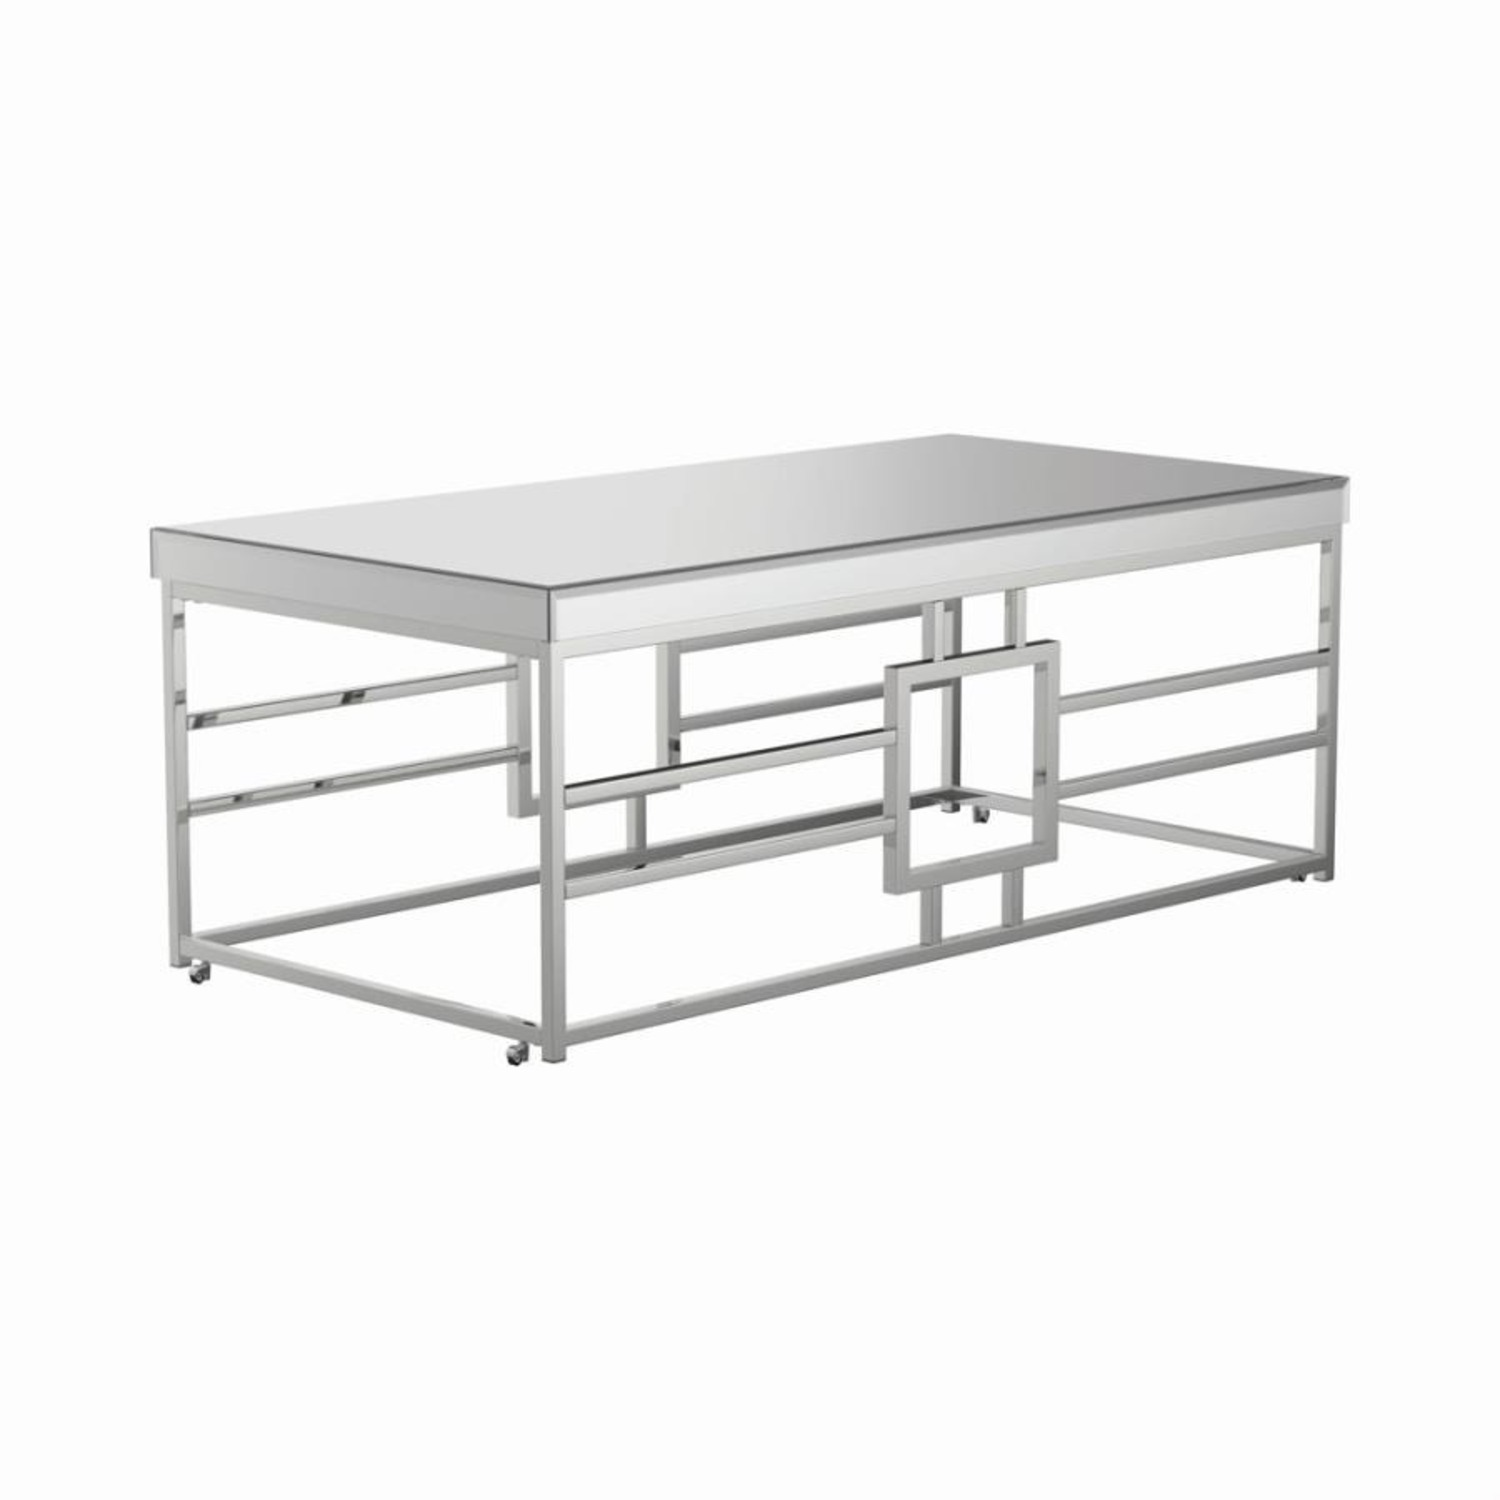 Modern Coffee Table In Chrome Finish Frame - image-0